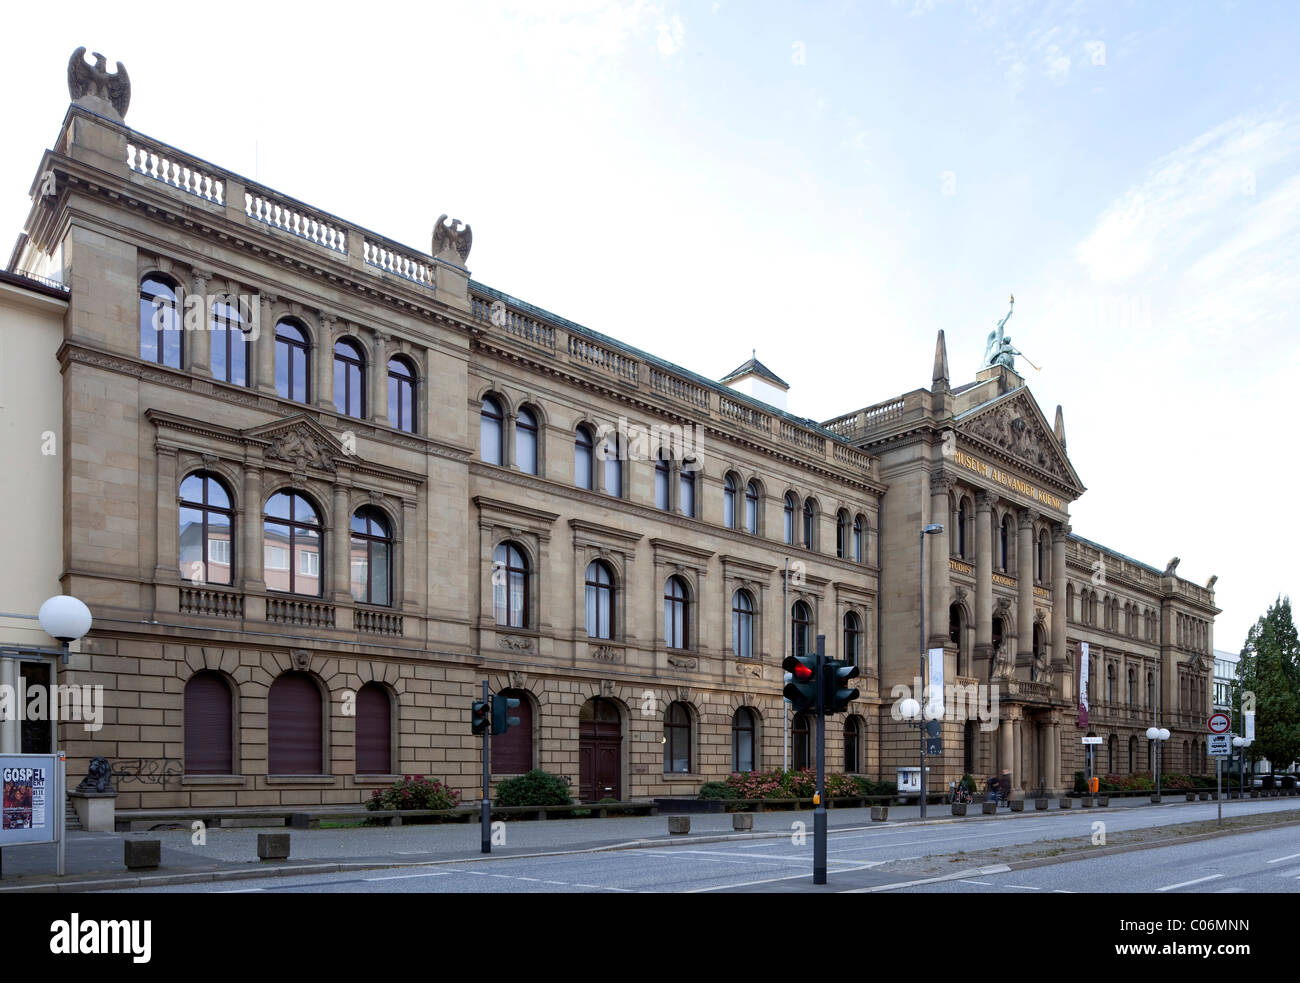 Alexander Koenig Museum, Zoological Research Institute, Natural History Museum, Bonn, Rhineland, North Rhine-Westphalia - Stock Image